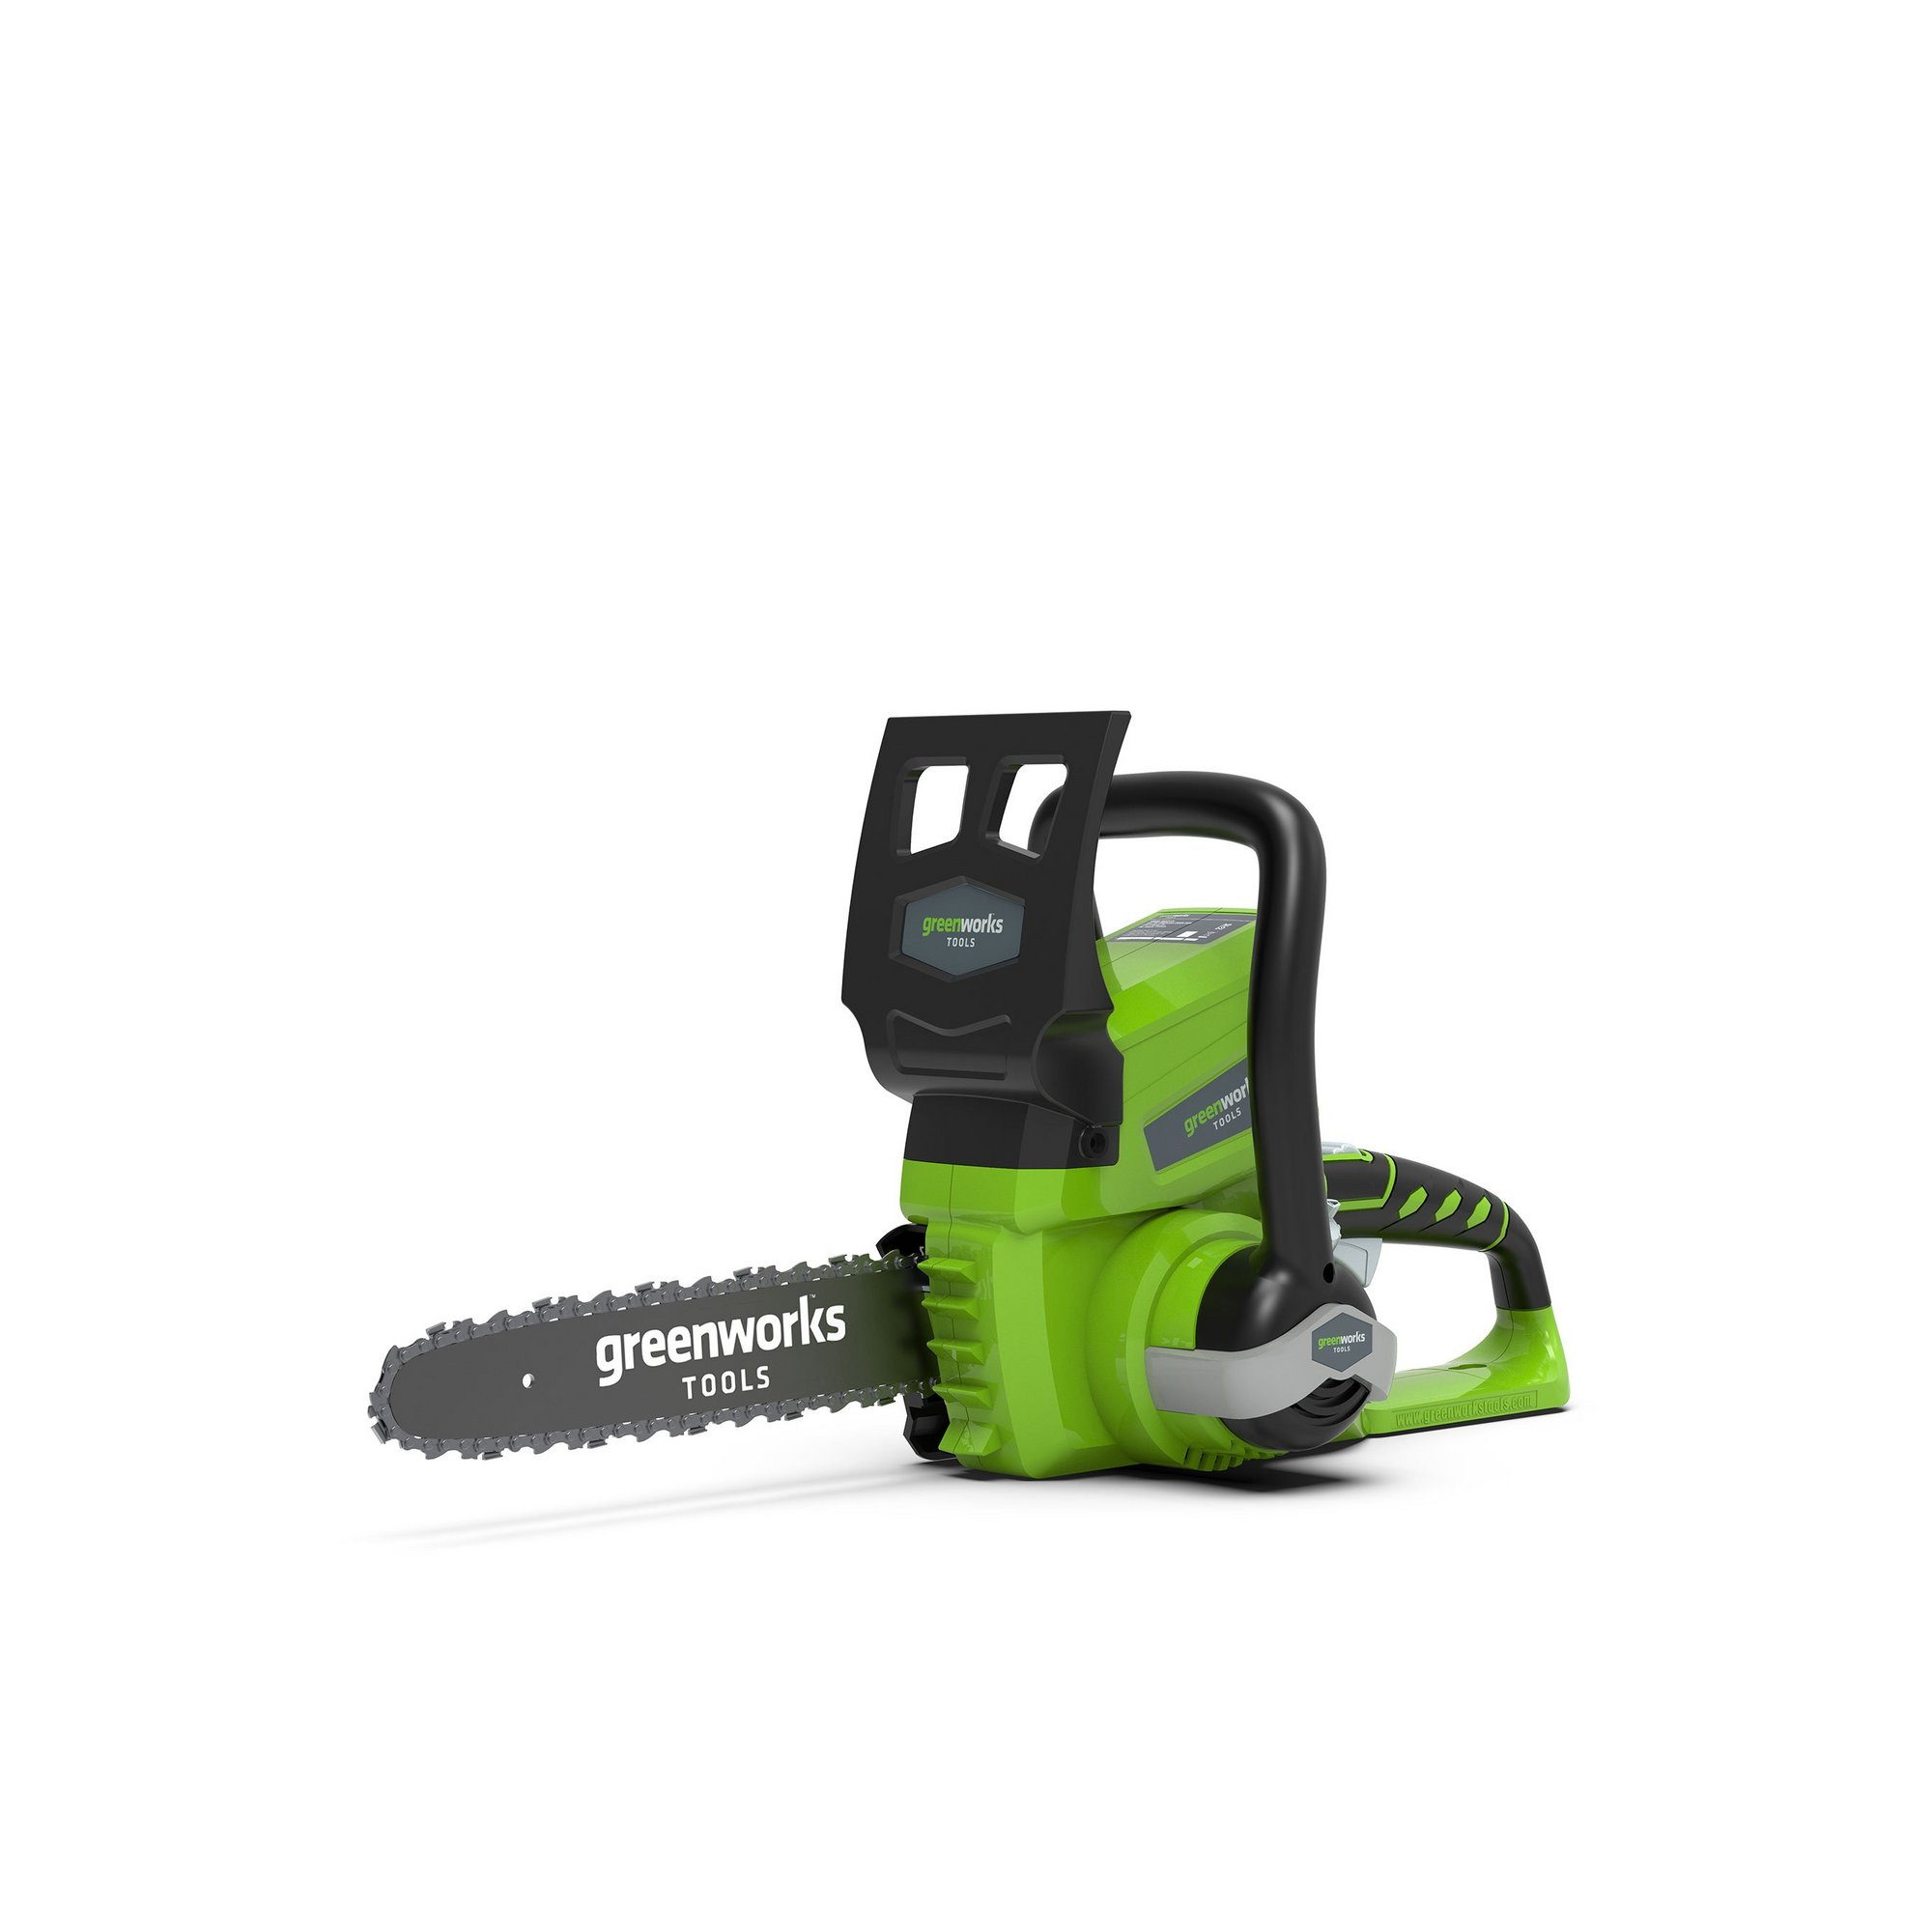 Image of Greenworks 24v 25cm Cordless Chainsaw with 2ah Battery and Charger